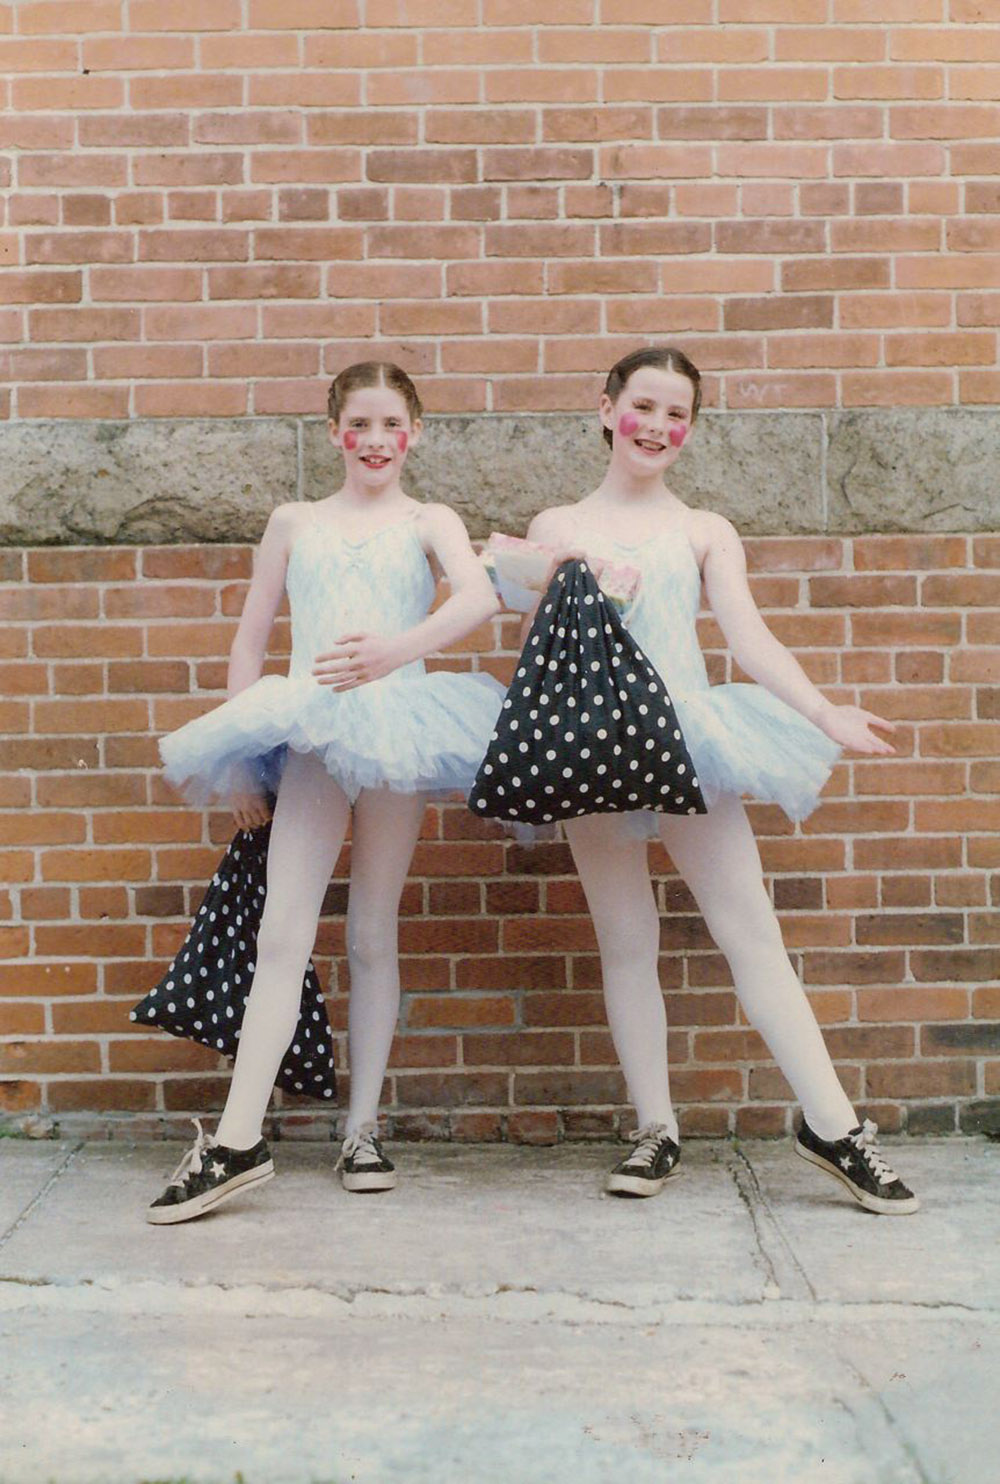 Nat as a Young Dancer (right)